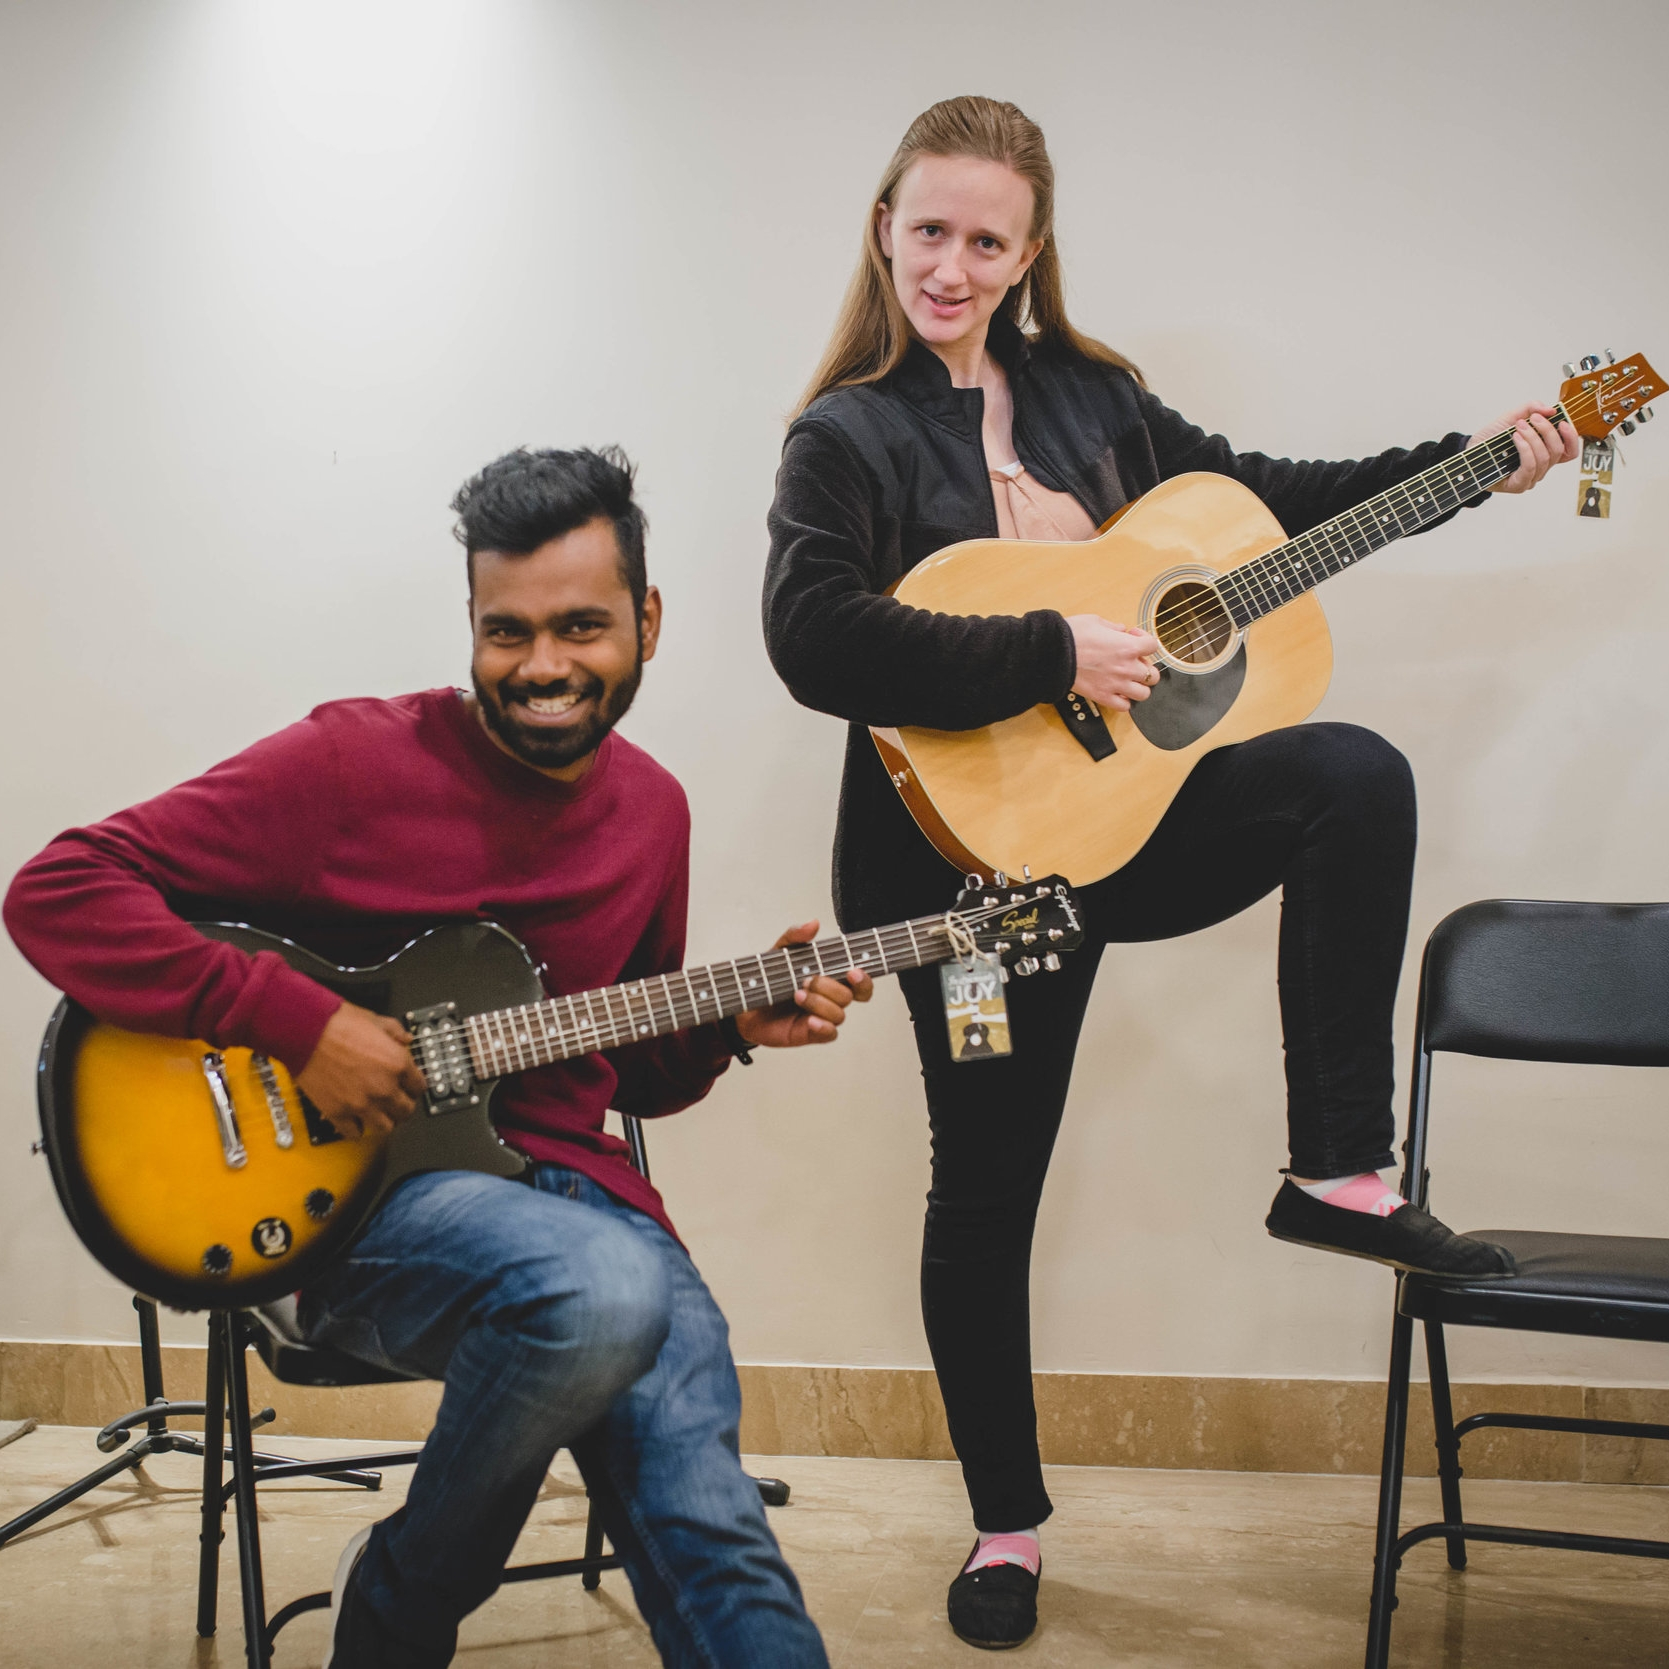 As you can see, music teachers Manohar Paul and Rachel Nowlin bring both their talent and their humor into teaching the class.